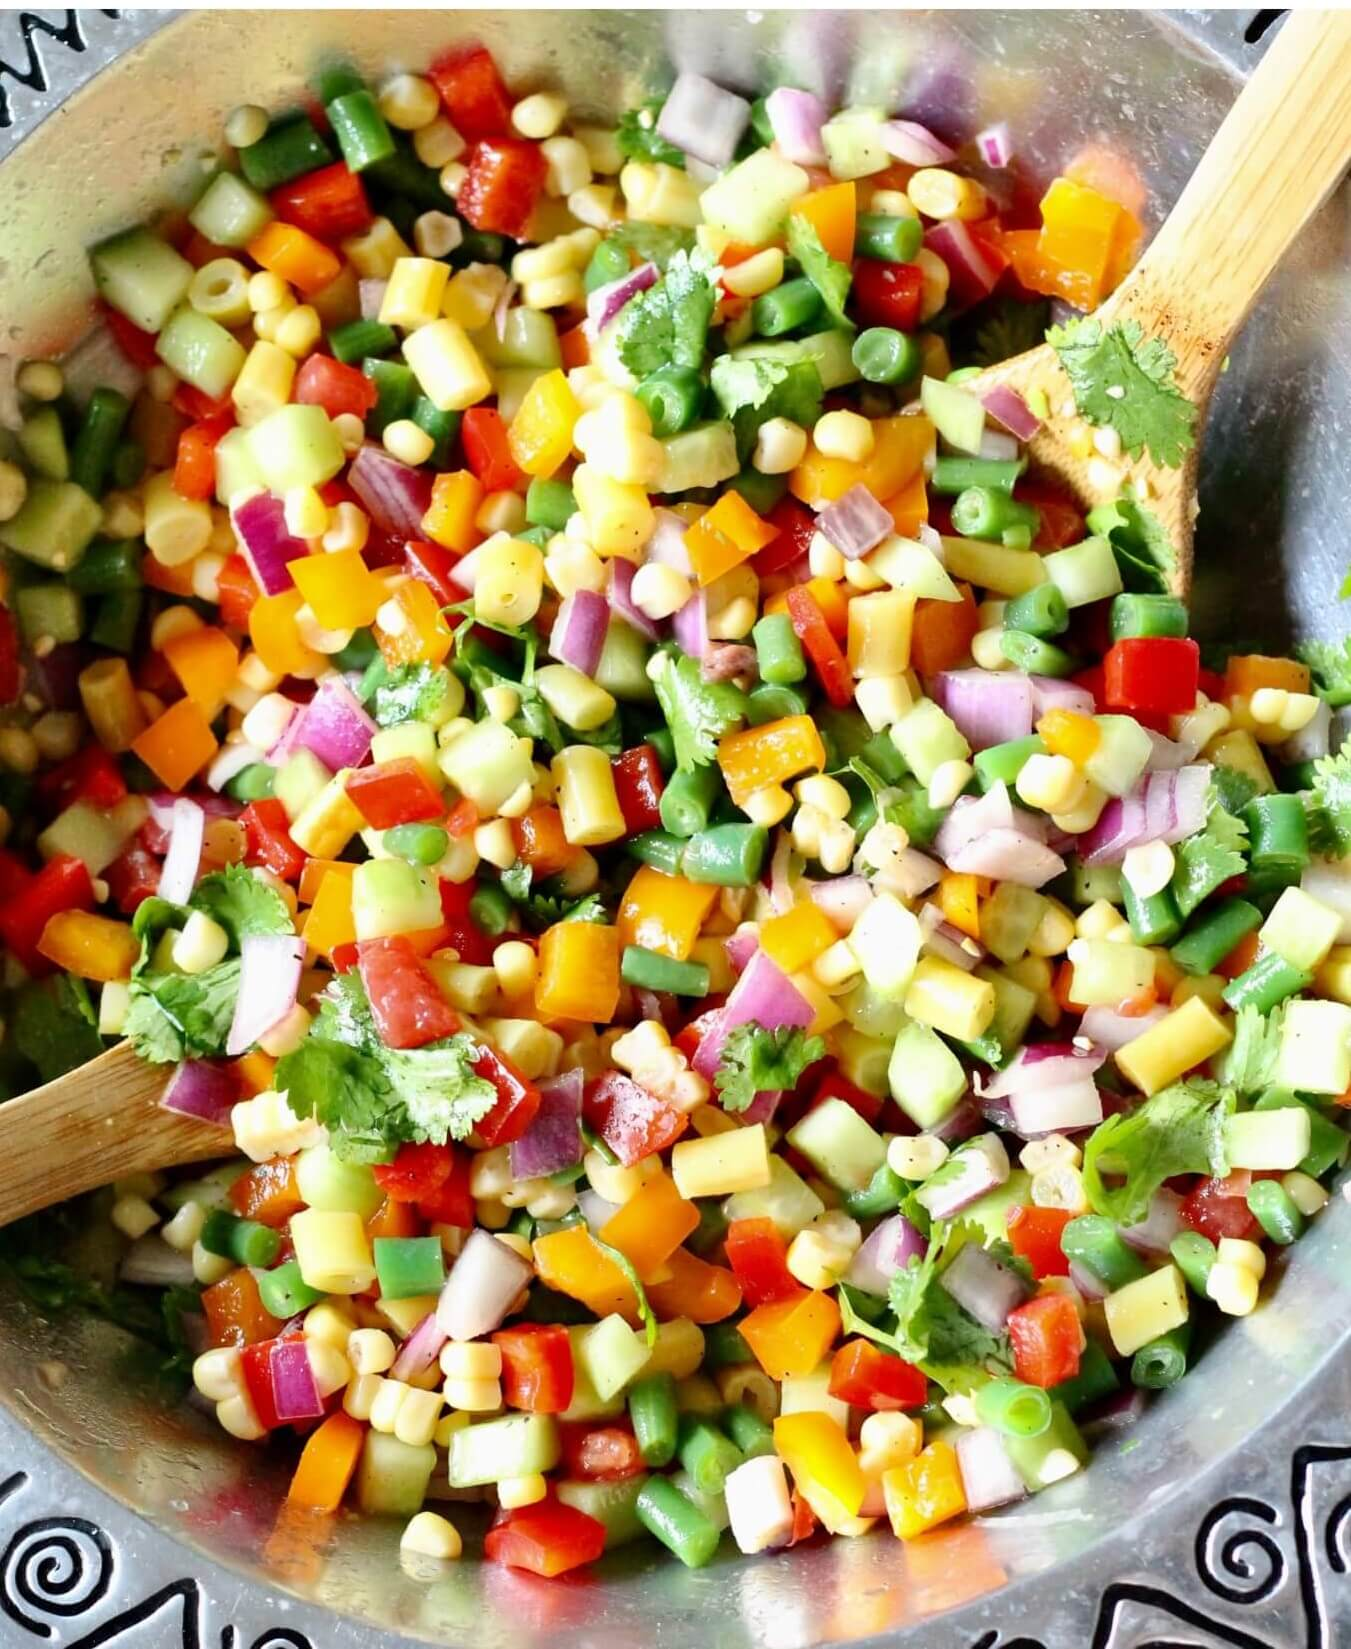 18. Chopped Vegetable Salad